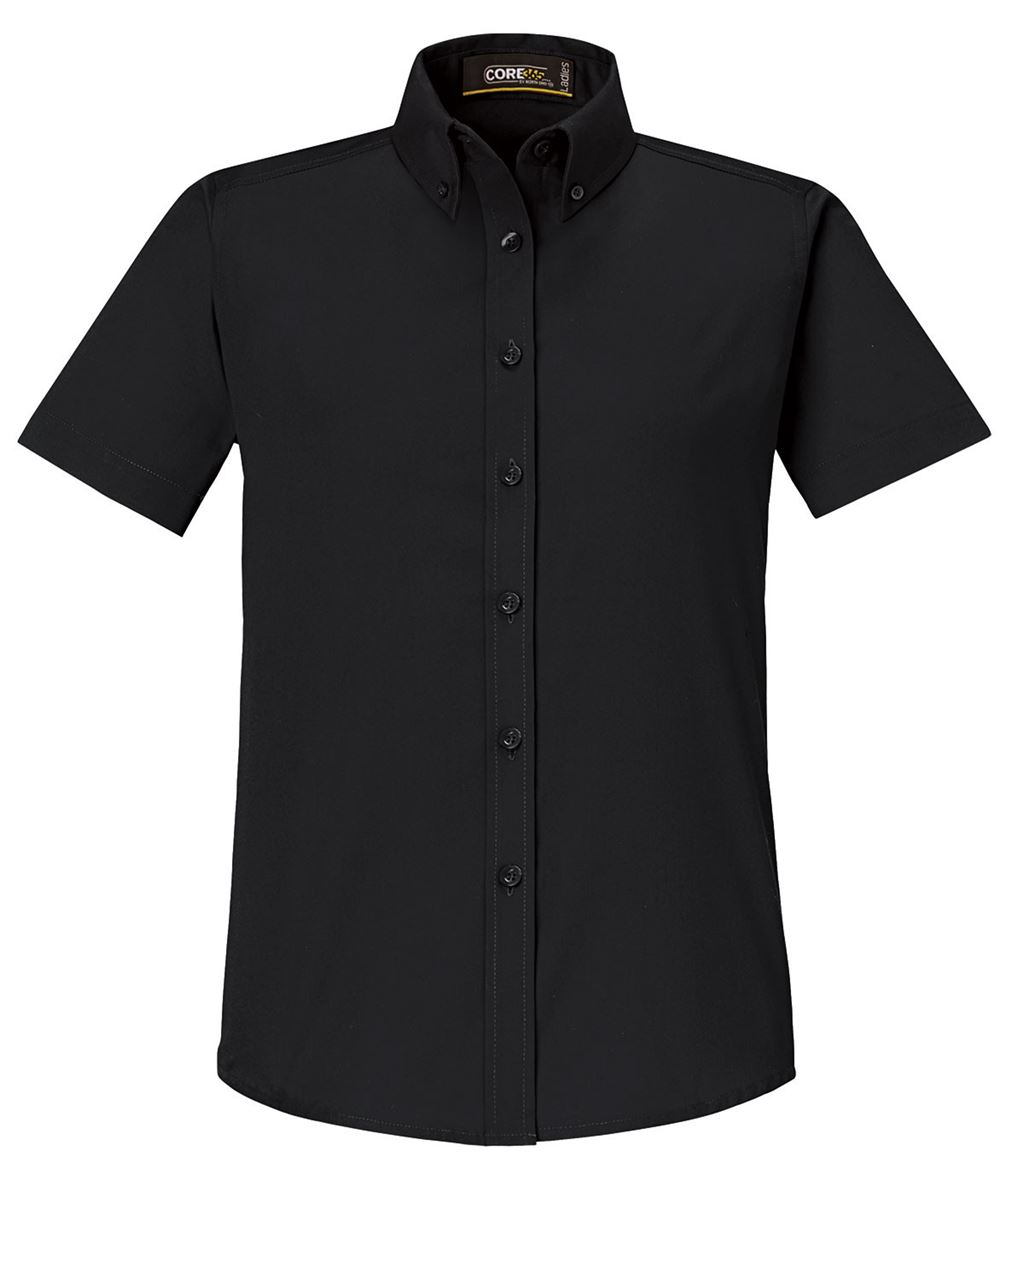 Picture of Core365 Ladies Short Sleeve Twill Shirt